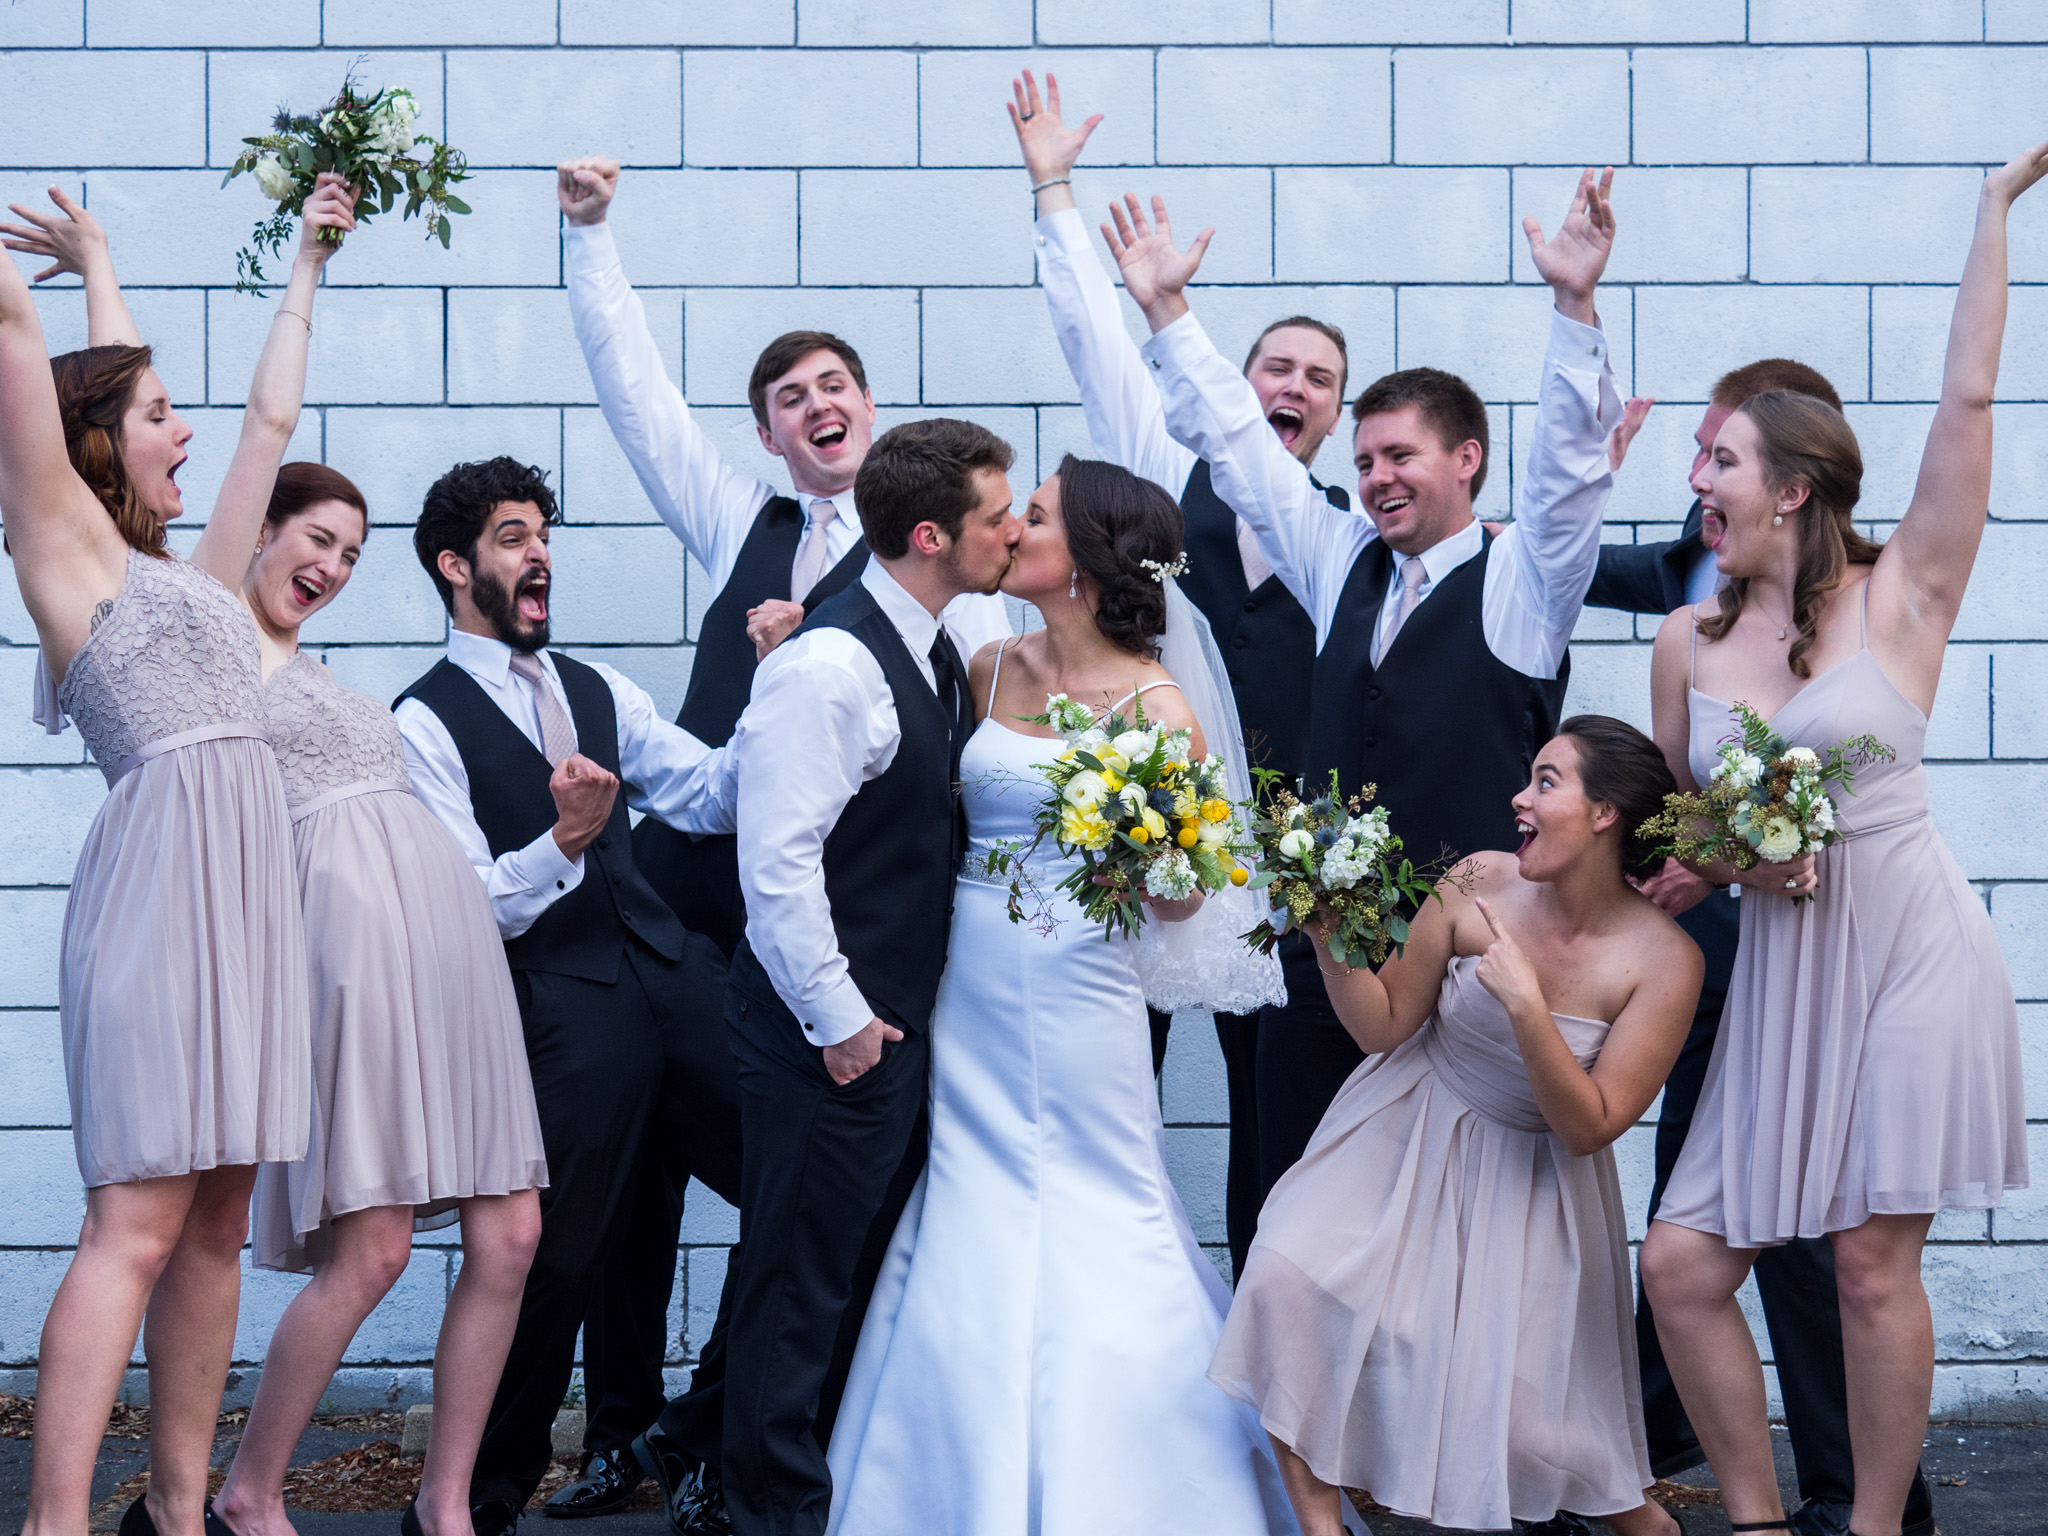 214 Martin Street, Wedding Photography, Raleigh, NC, Bridal Party, Fun